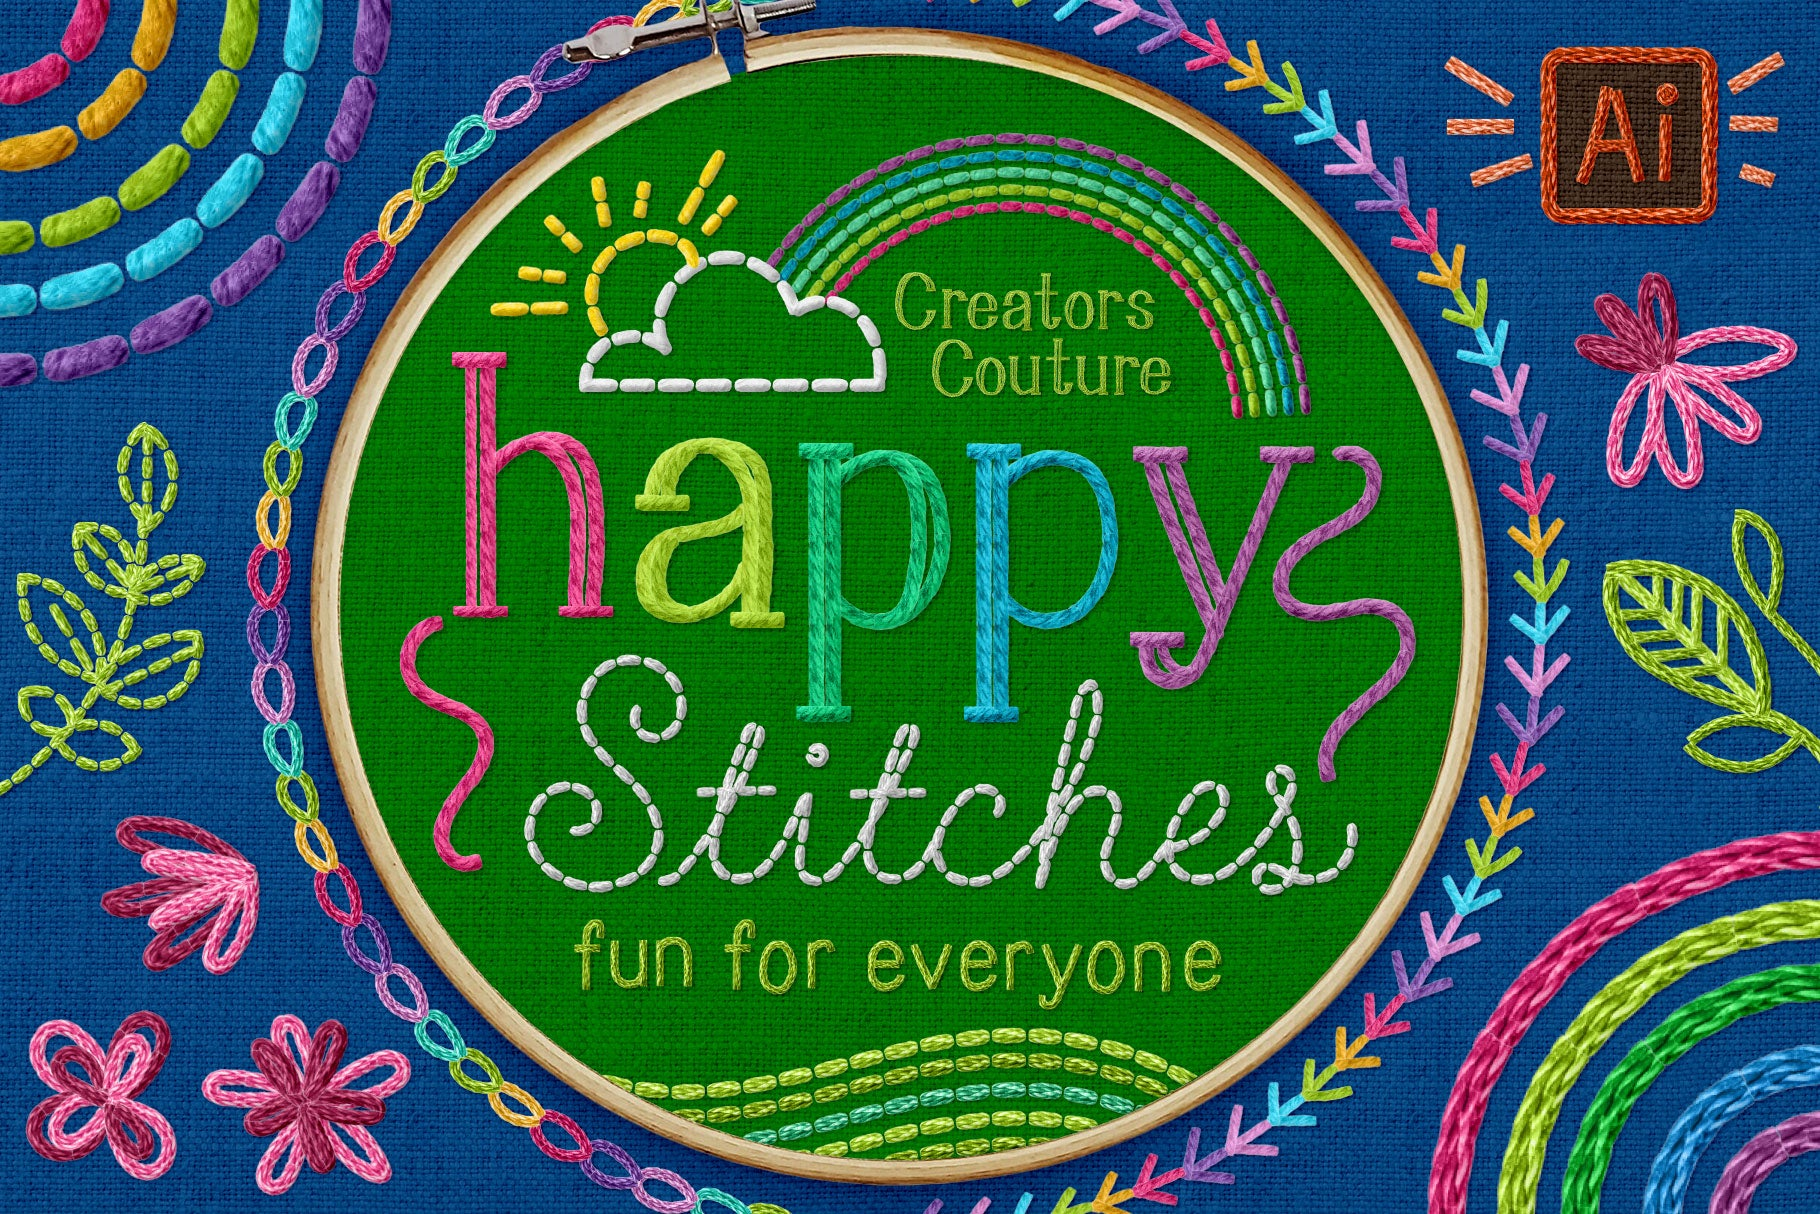 Illustrator Thread Brushes for a Hand-Embroidered Illustration Effect, bright cover image